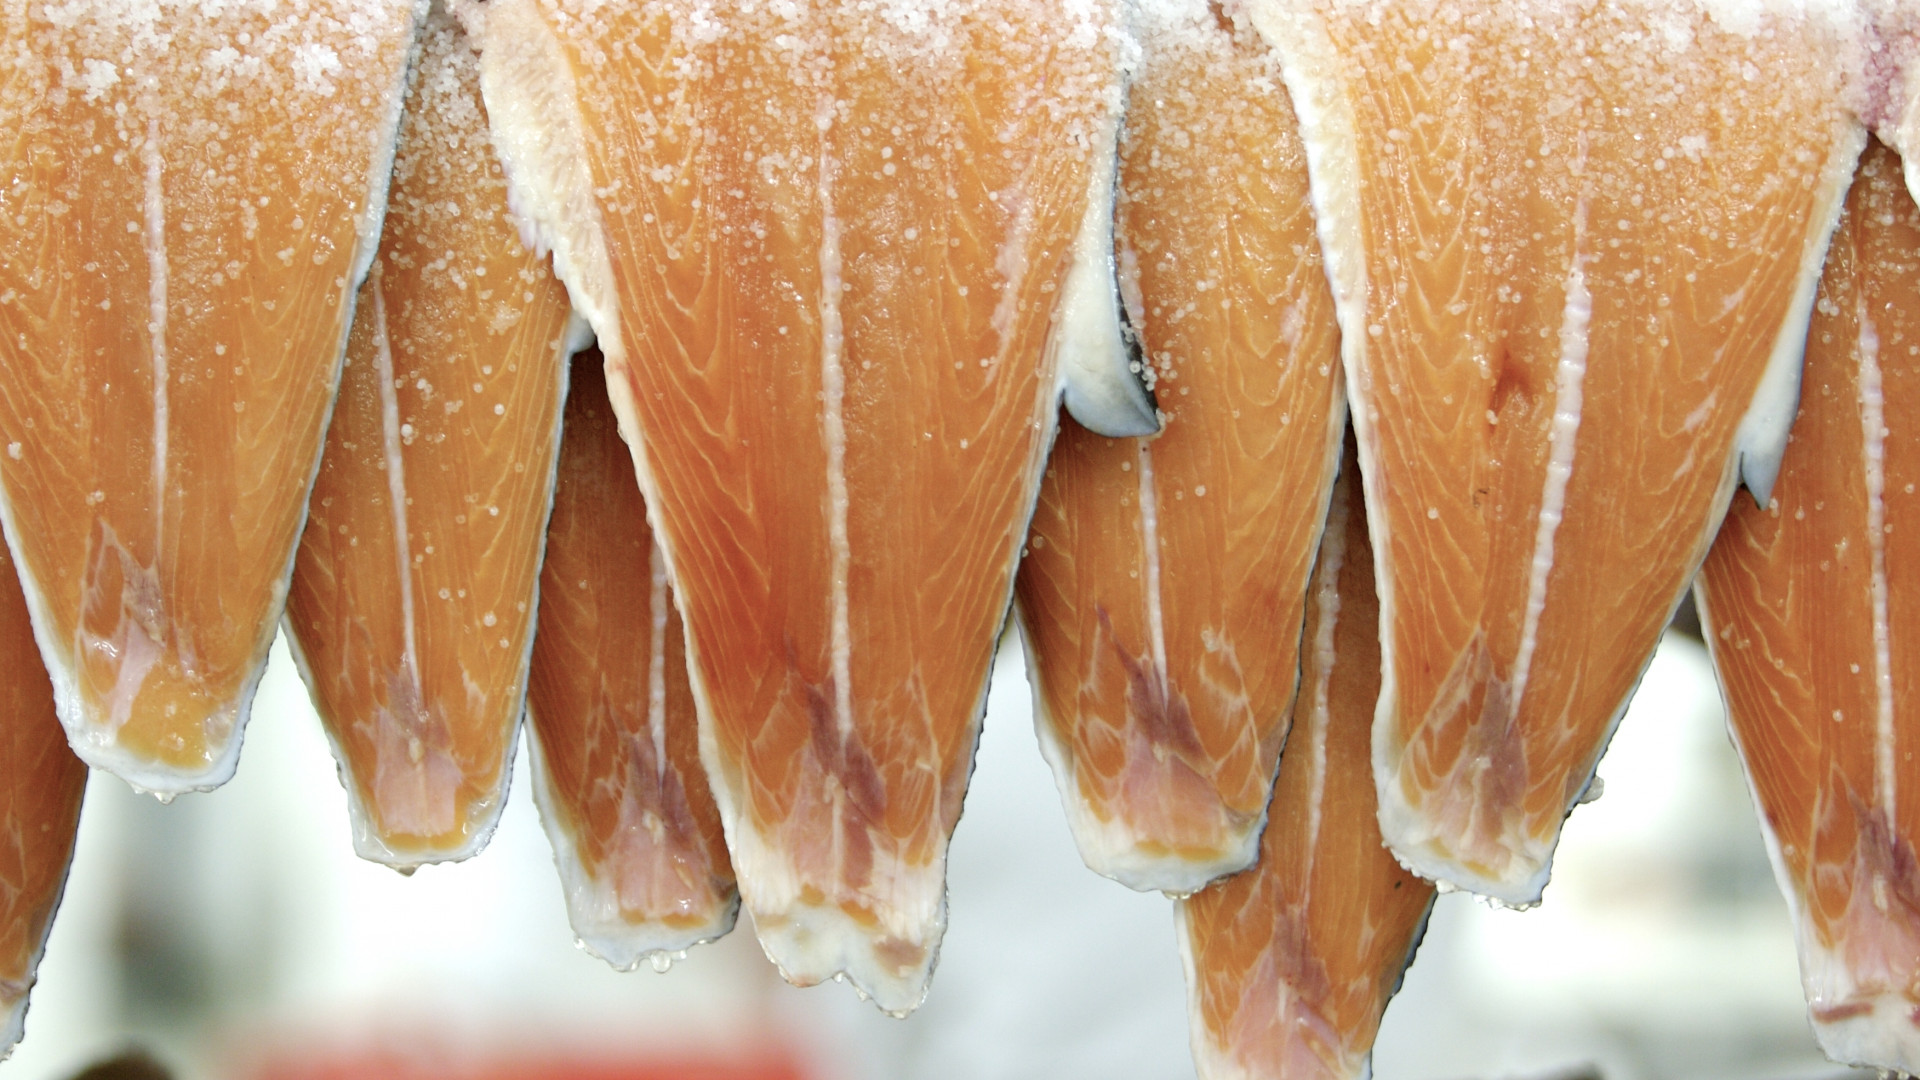 Old-school smoked fish: H. Forman & Son